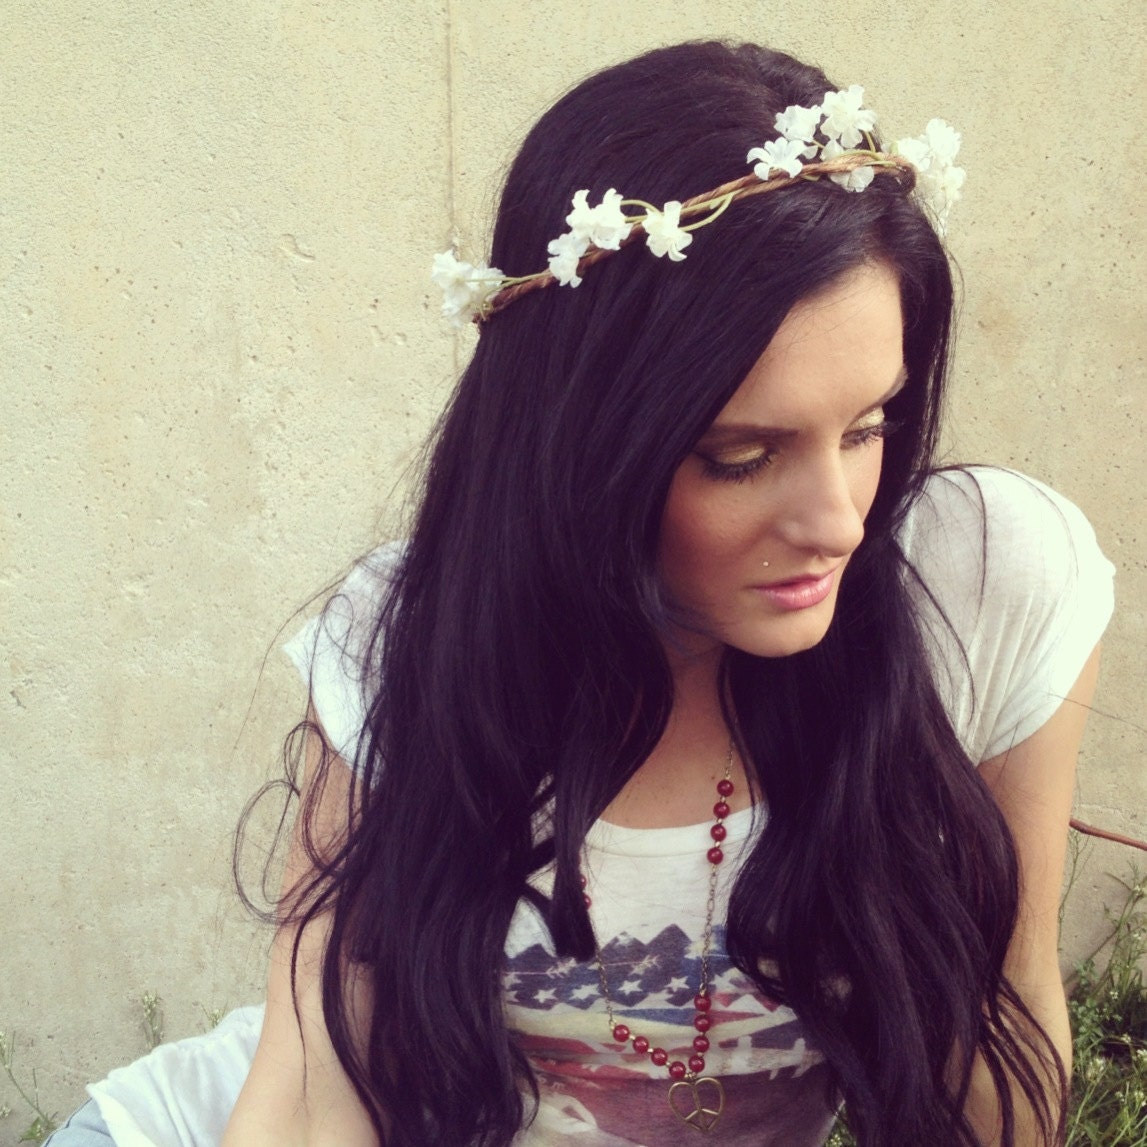 Goddess Hair Wreathes Mini White Blooms Headband Hair Crown